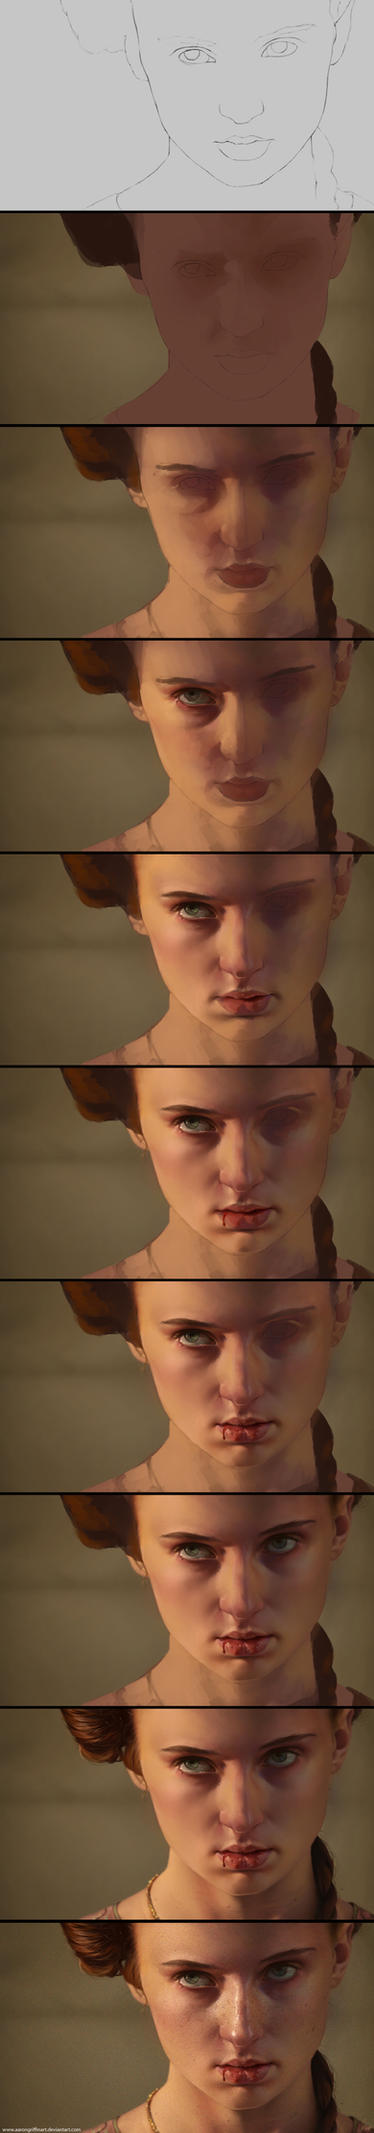 Sansa - Game of Thrones Process by AaronGriffinArt